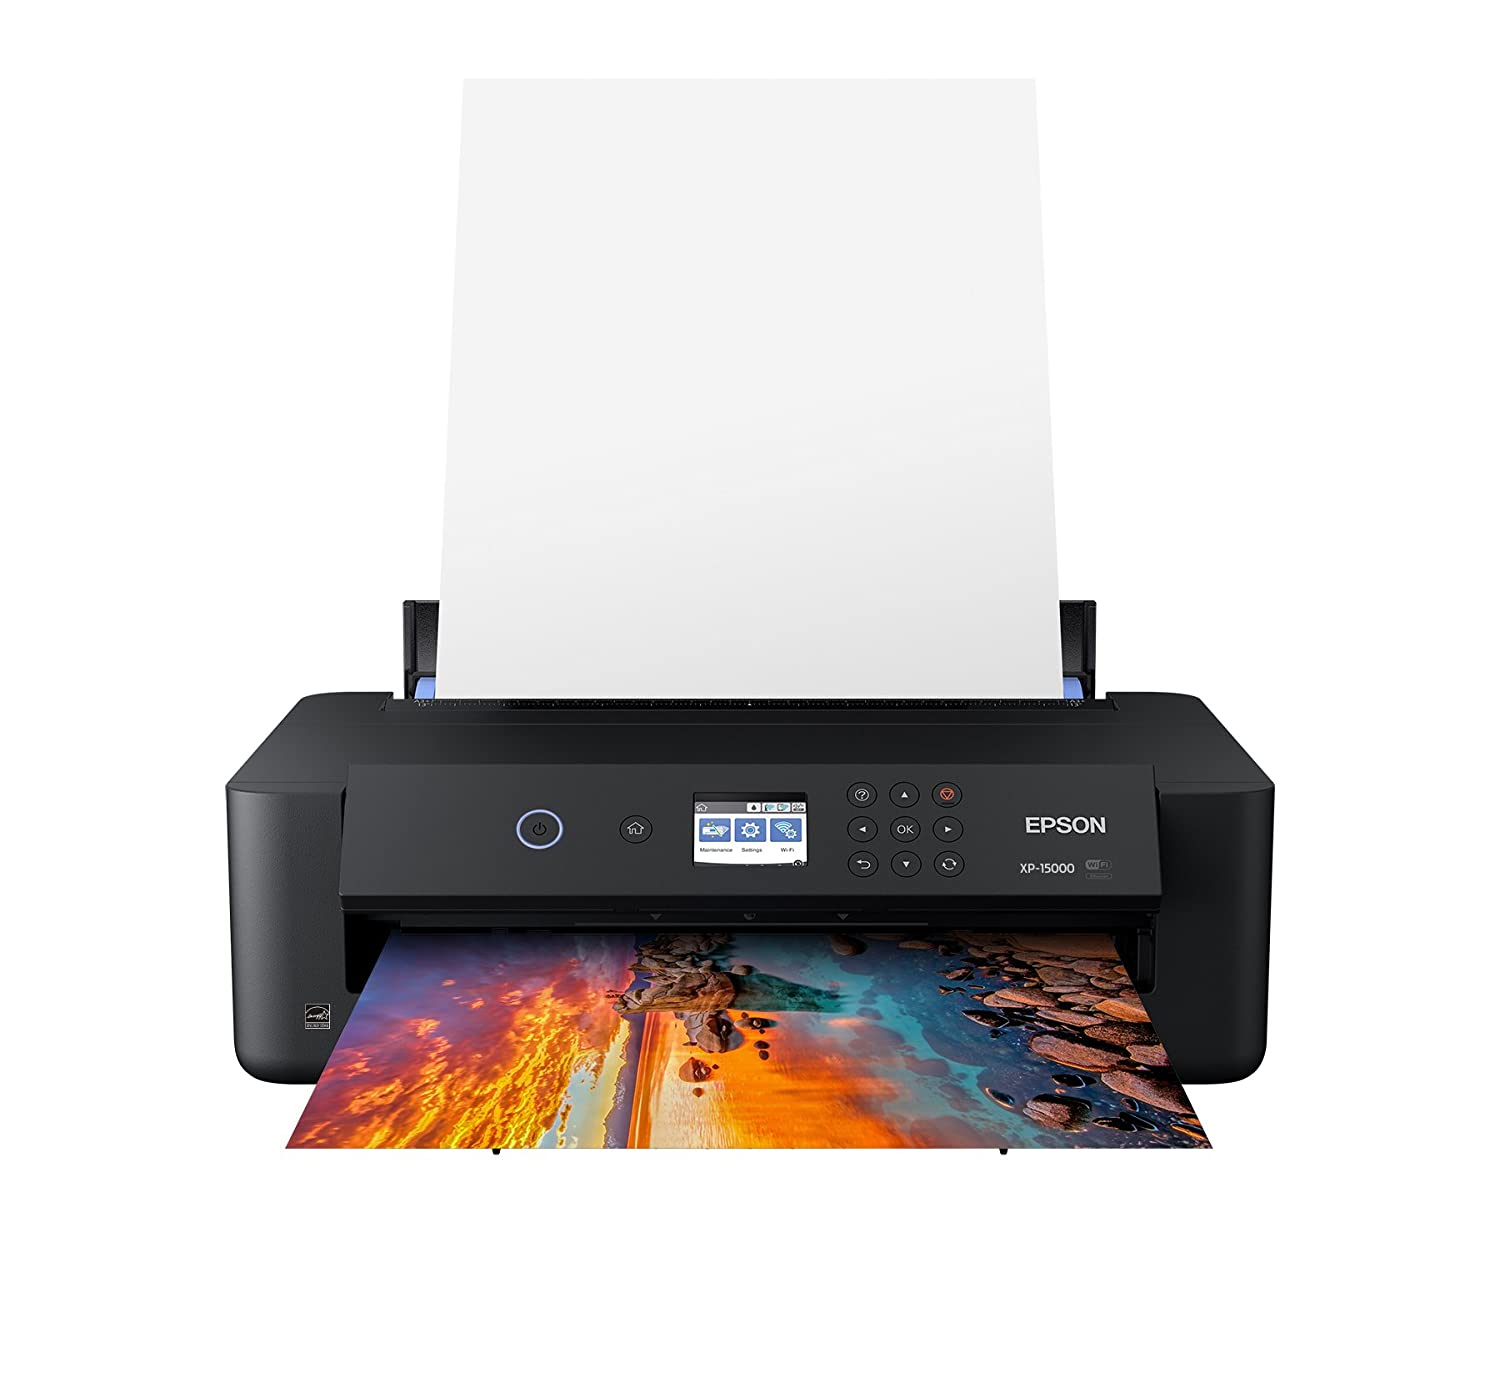 Epson Expression XP-15000 Wireless Printer Black Friday Deal 2019